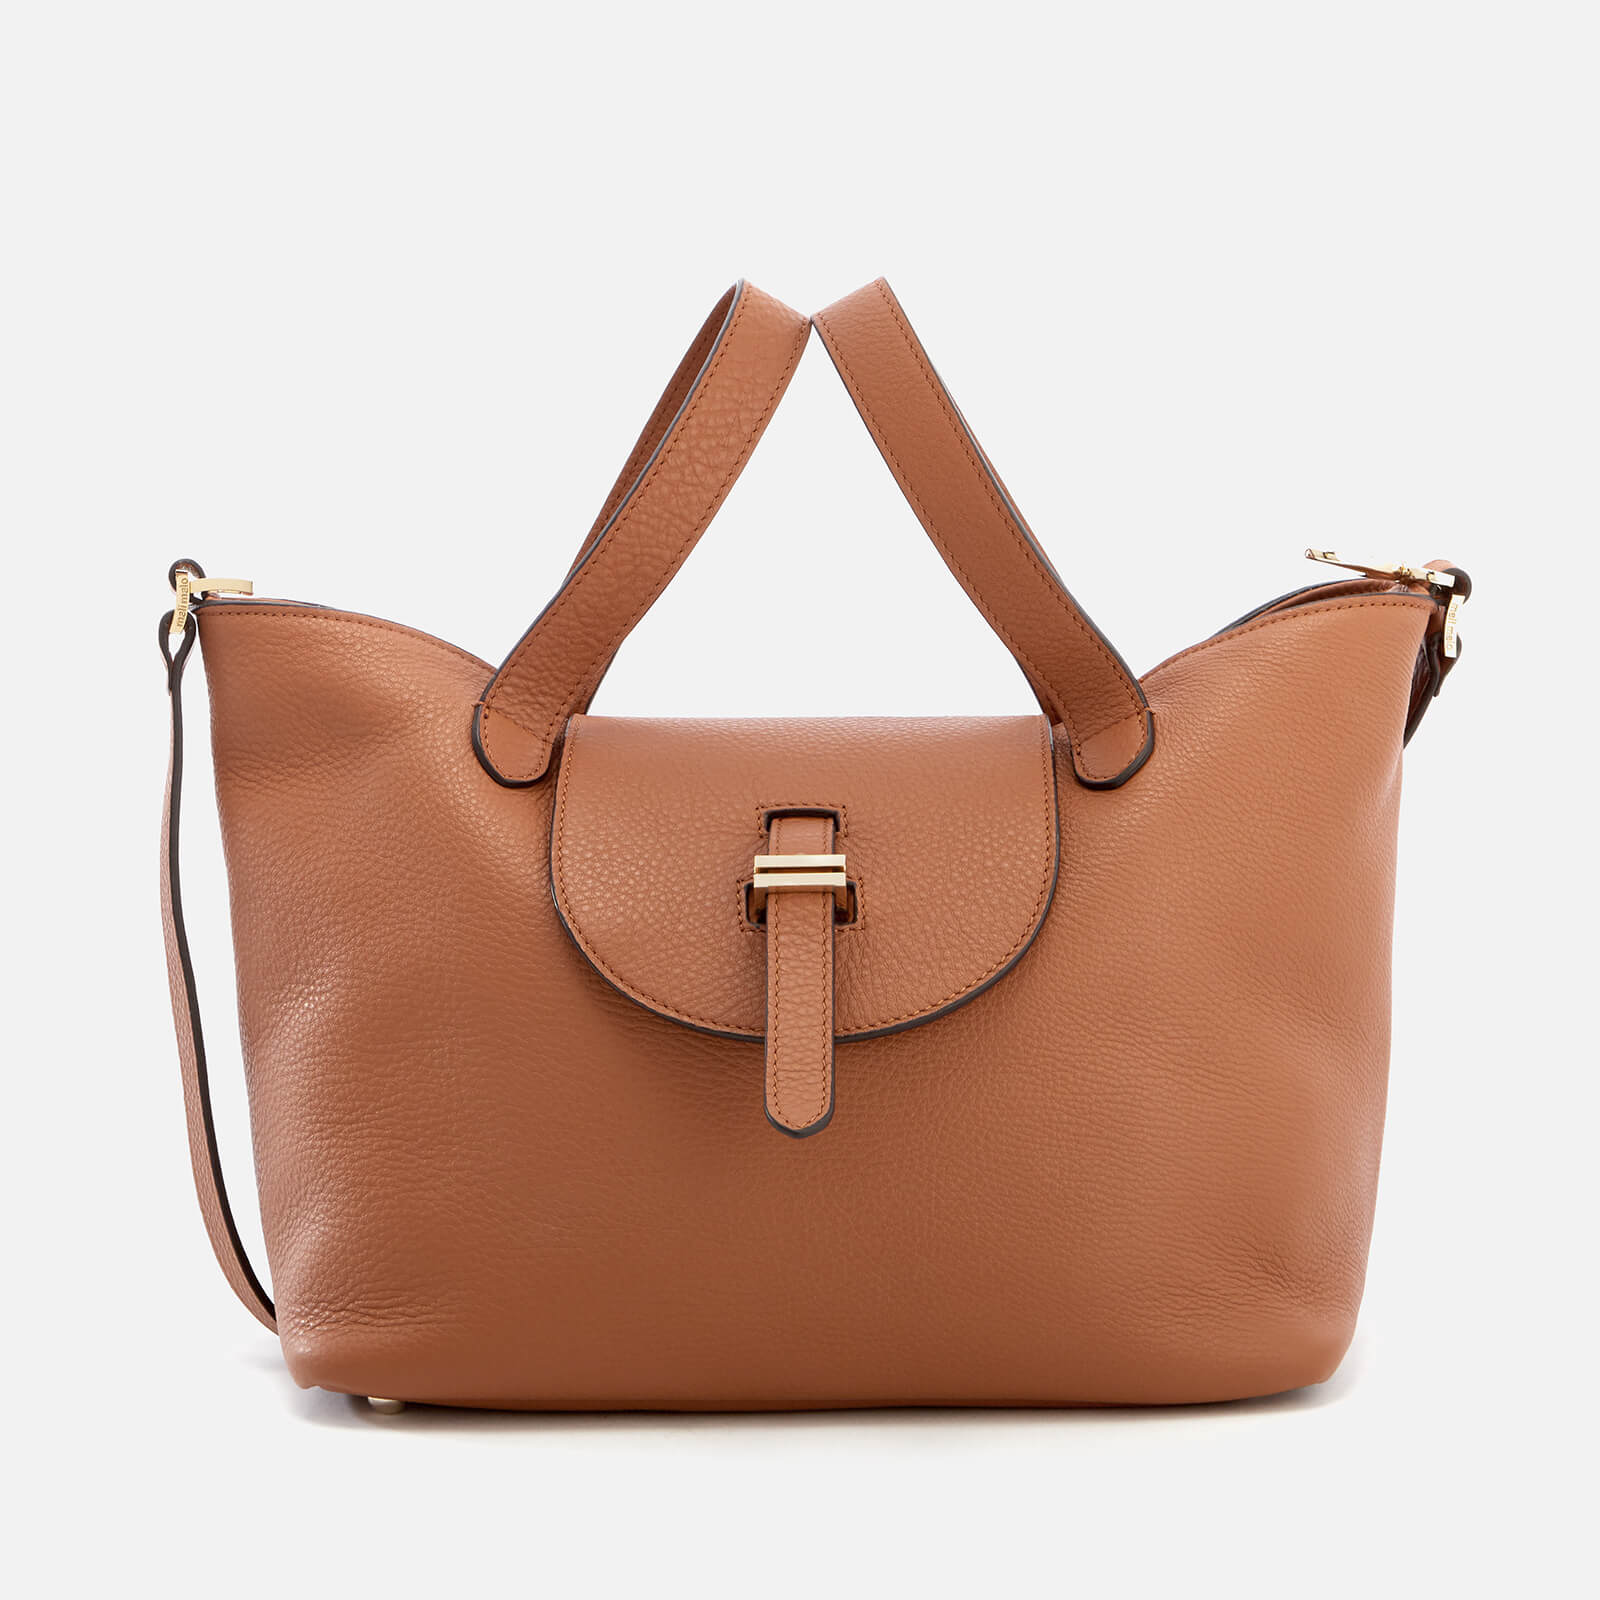 1c3fb66fd8b6 meli melo Women s Thela Medium Tote Bag - Tan - Free UK Delivery over £50